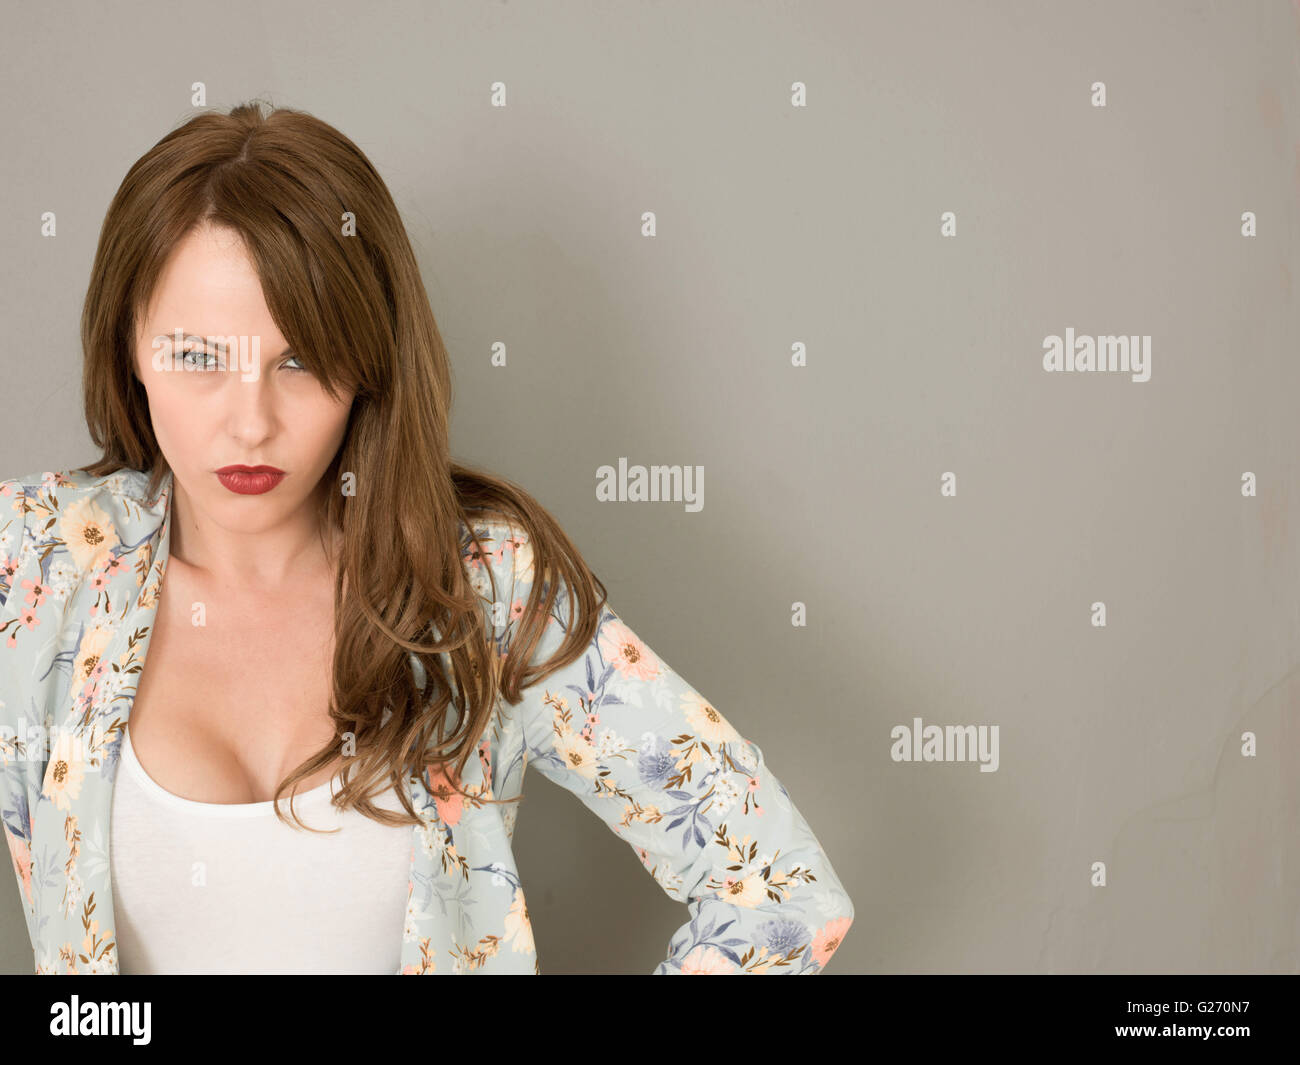 Portrait of an Angry Unhappy woman With Issues on Her Mind Looking At The Camera Frowning With Copy Space - Stock Image